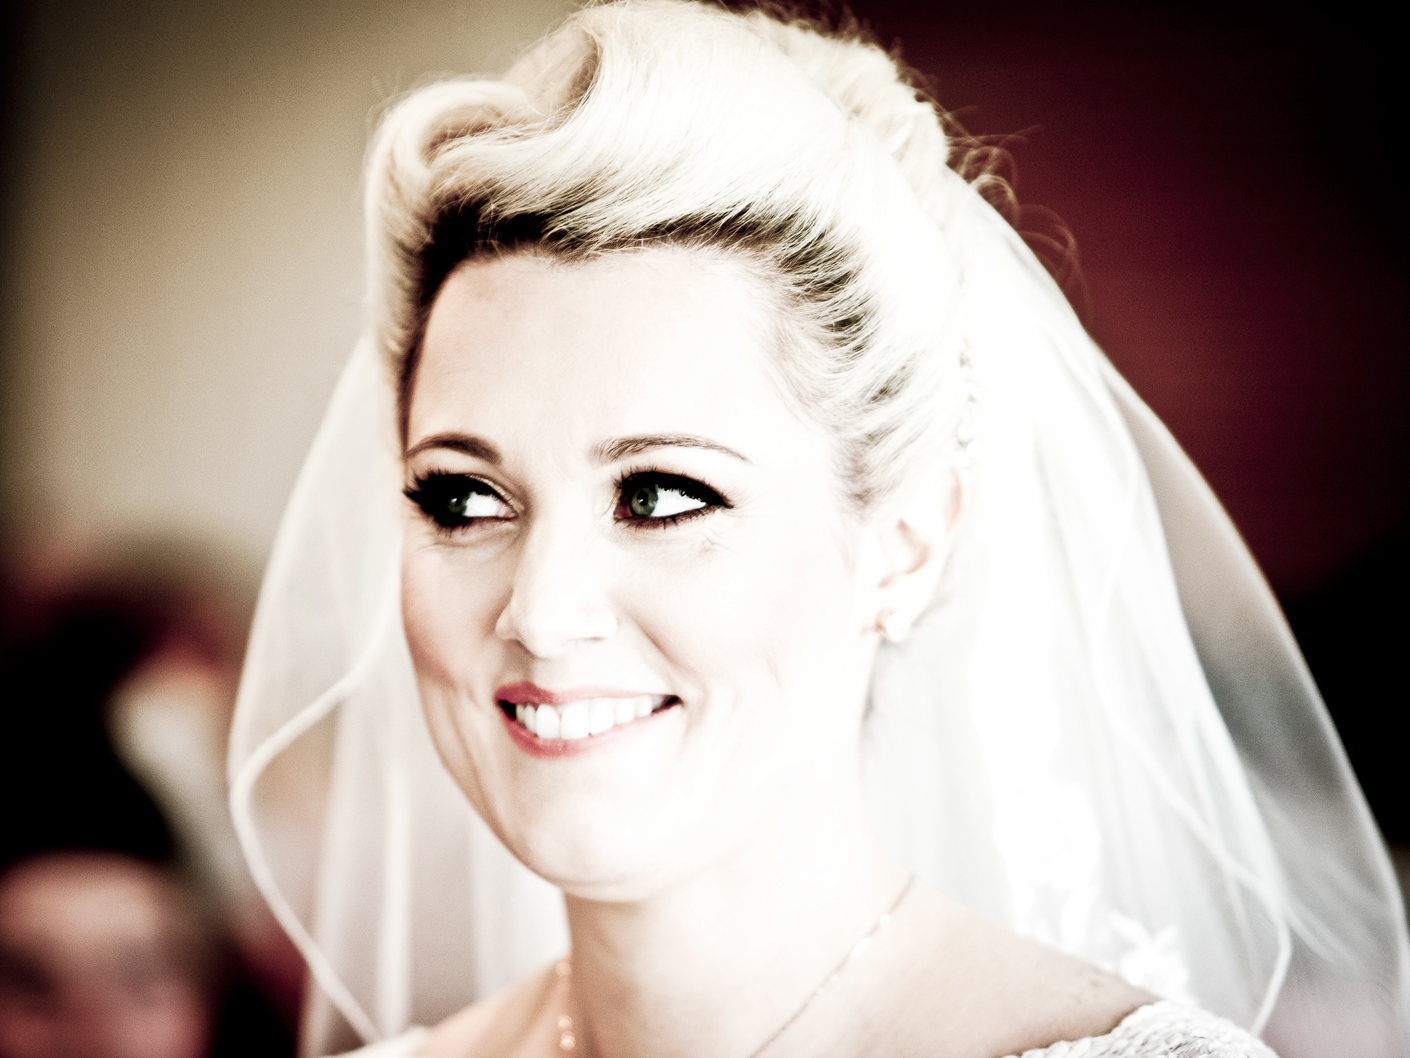 wedding-photography-of-the-bride-at-the-wedding-ceremony-at-the-tytherington-club-macclesfield-cheshire